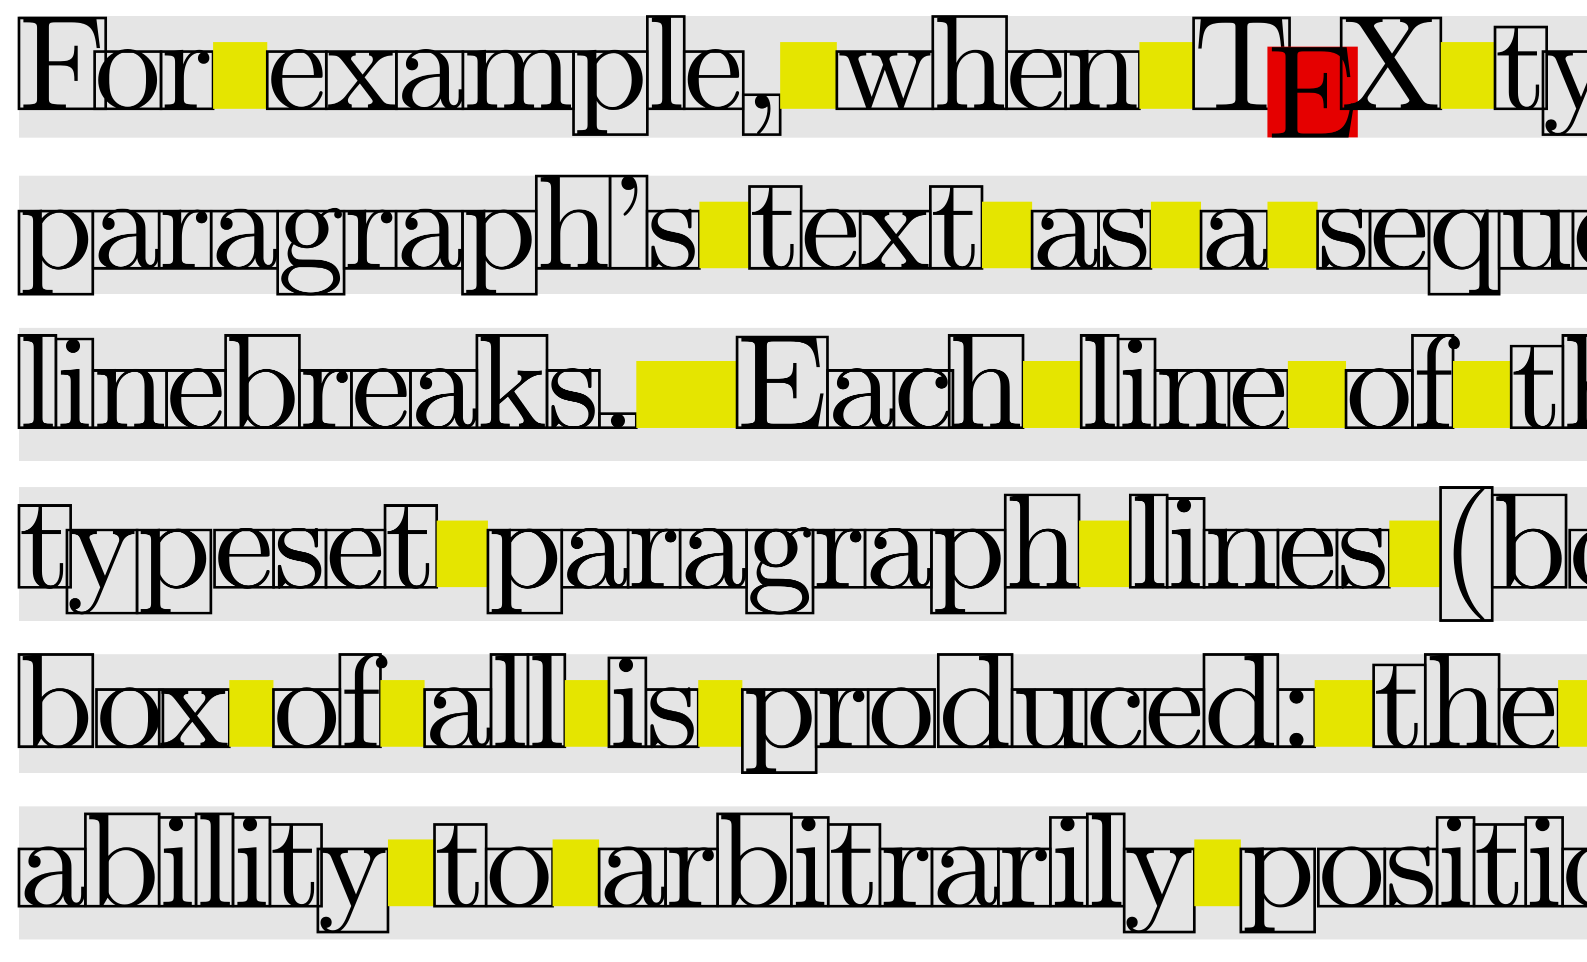 parsed paragraph showing boxes and glue